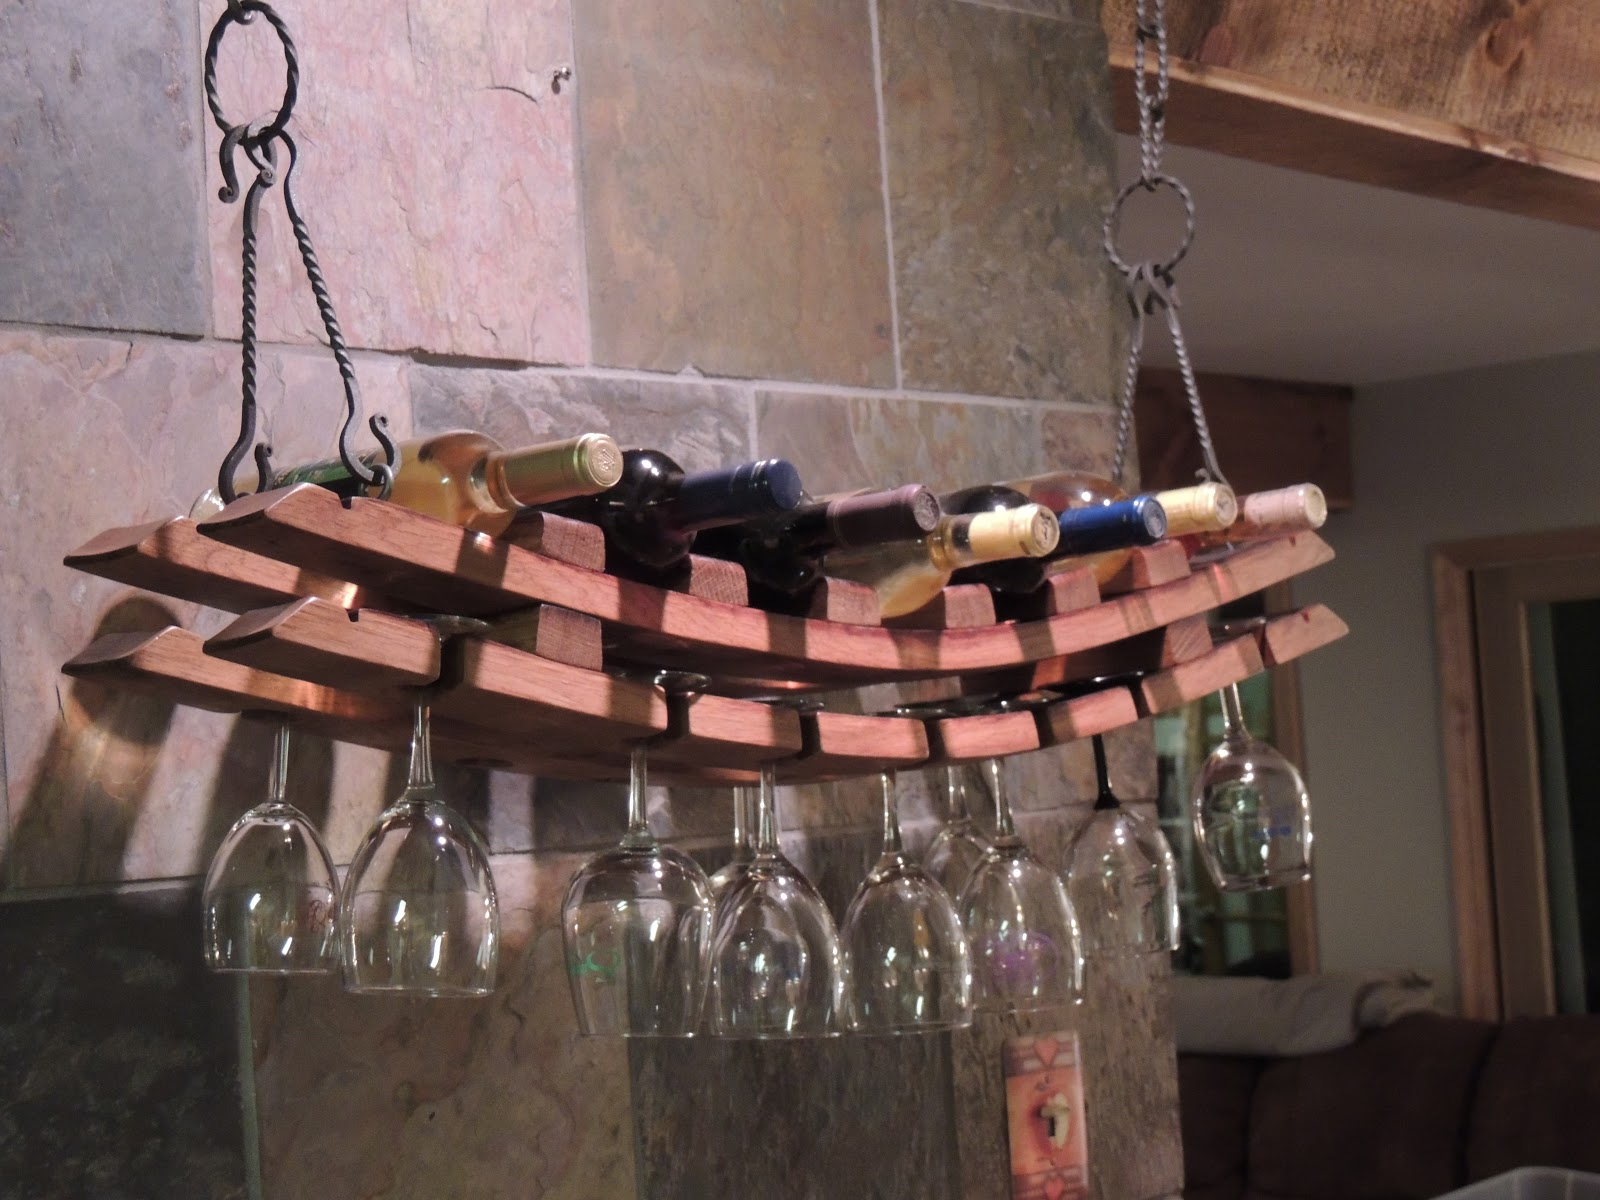 Hanging Bottle Rack Cork To Barrel Hanging Wine Bottle And Glass Rack